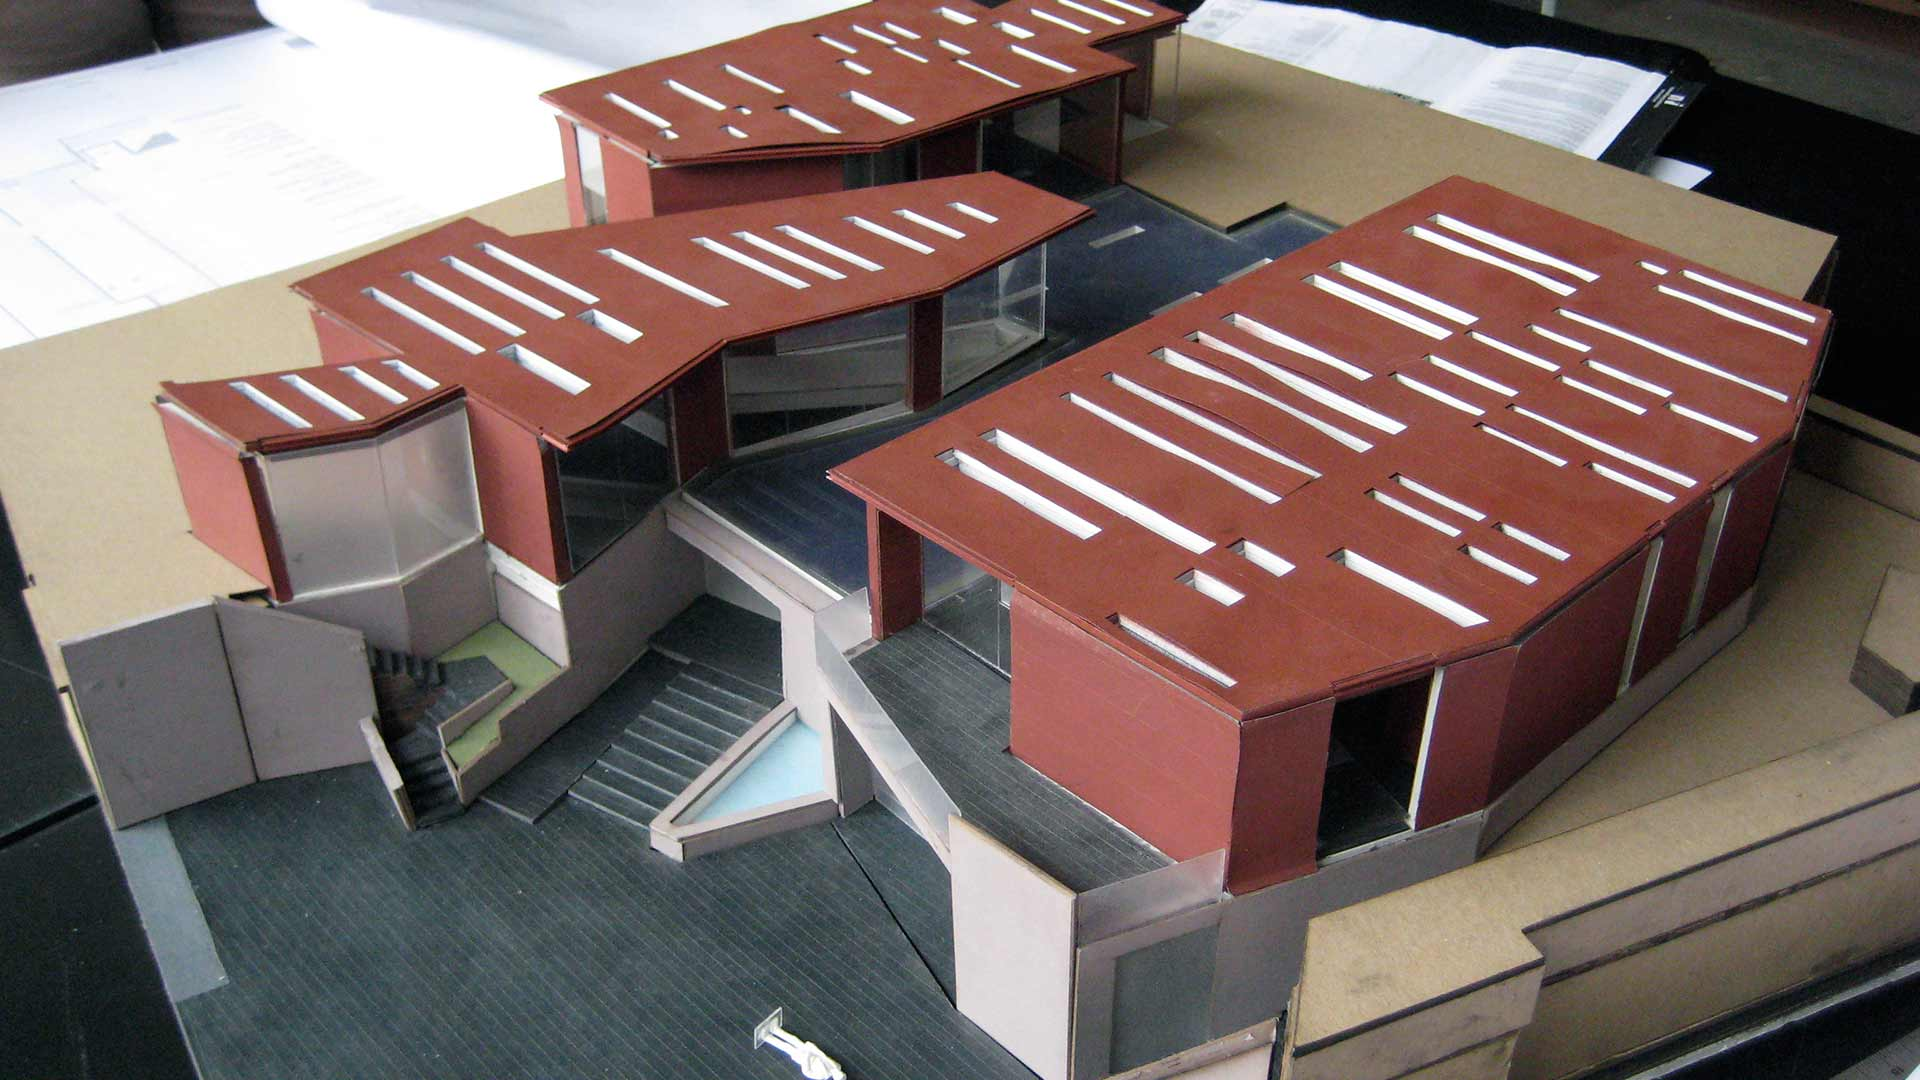 Architect's model of the Daeyang Gallery and House.